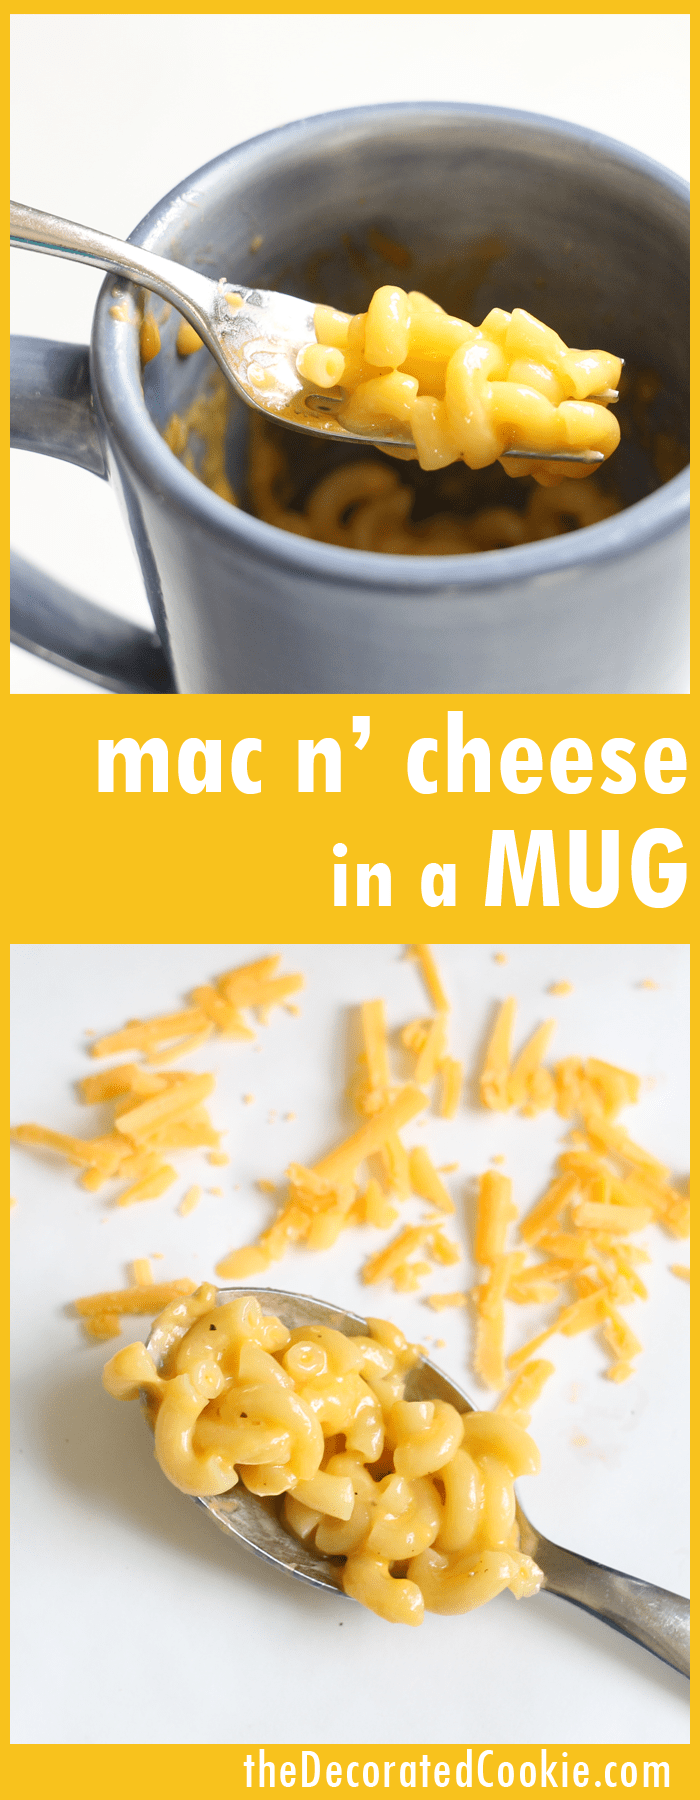 microwave mac and cheese in a mug